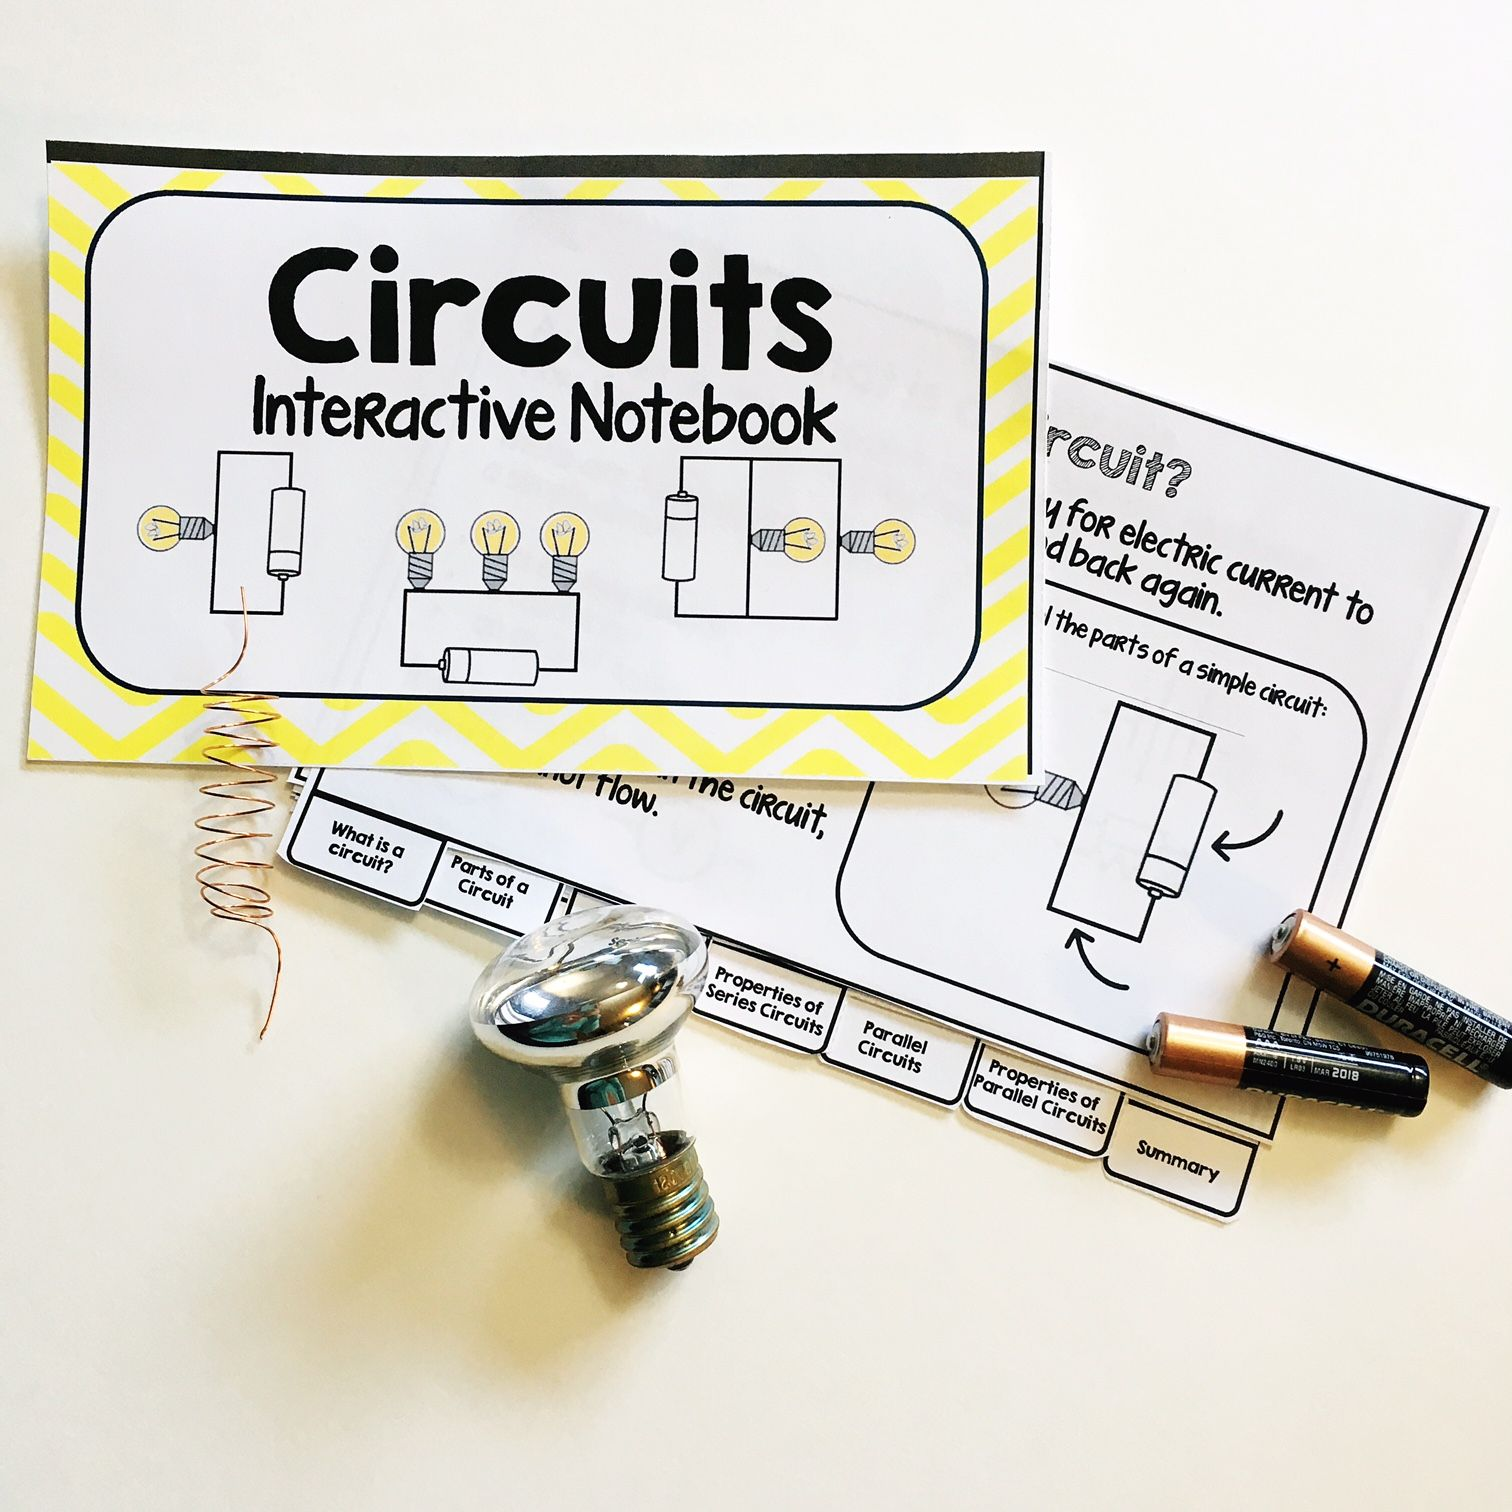 Circuits Interactive Notebook